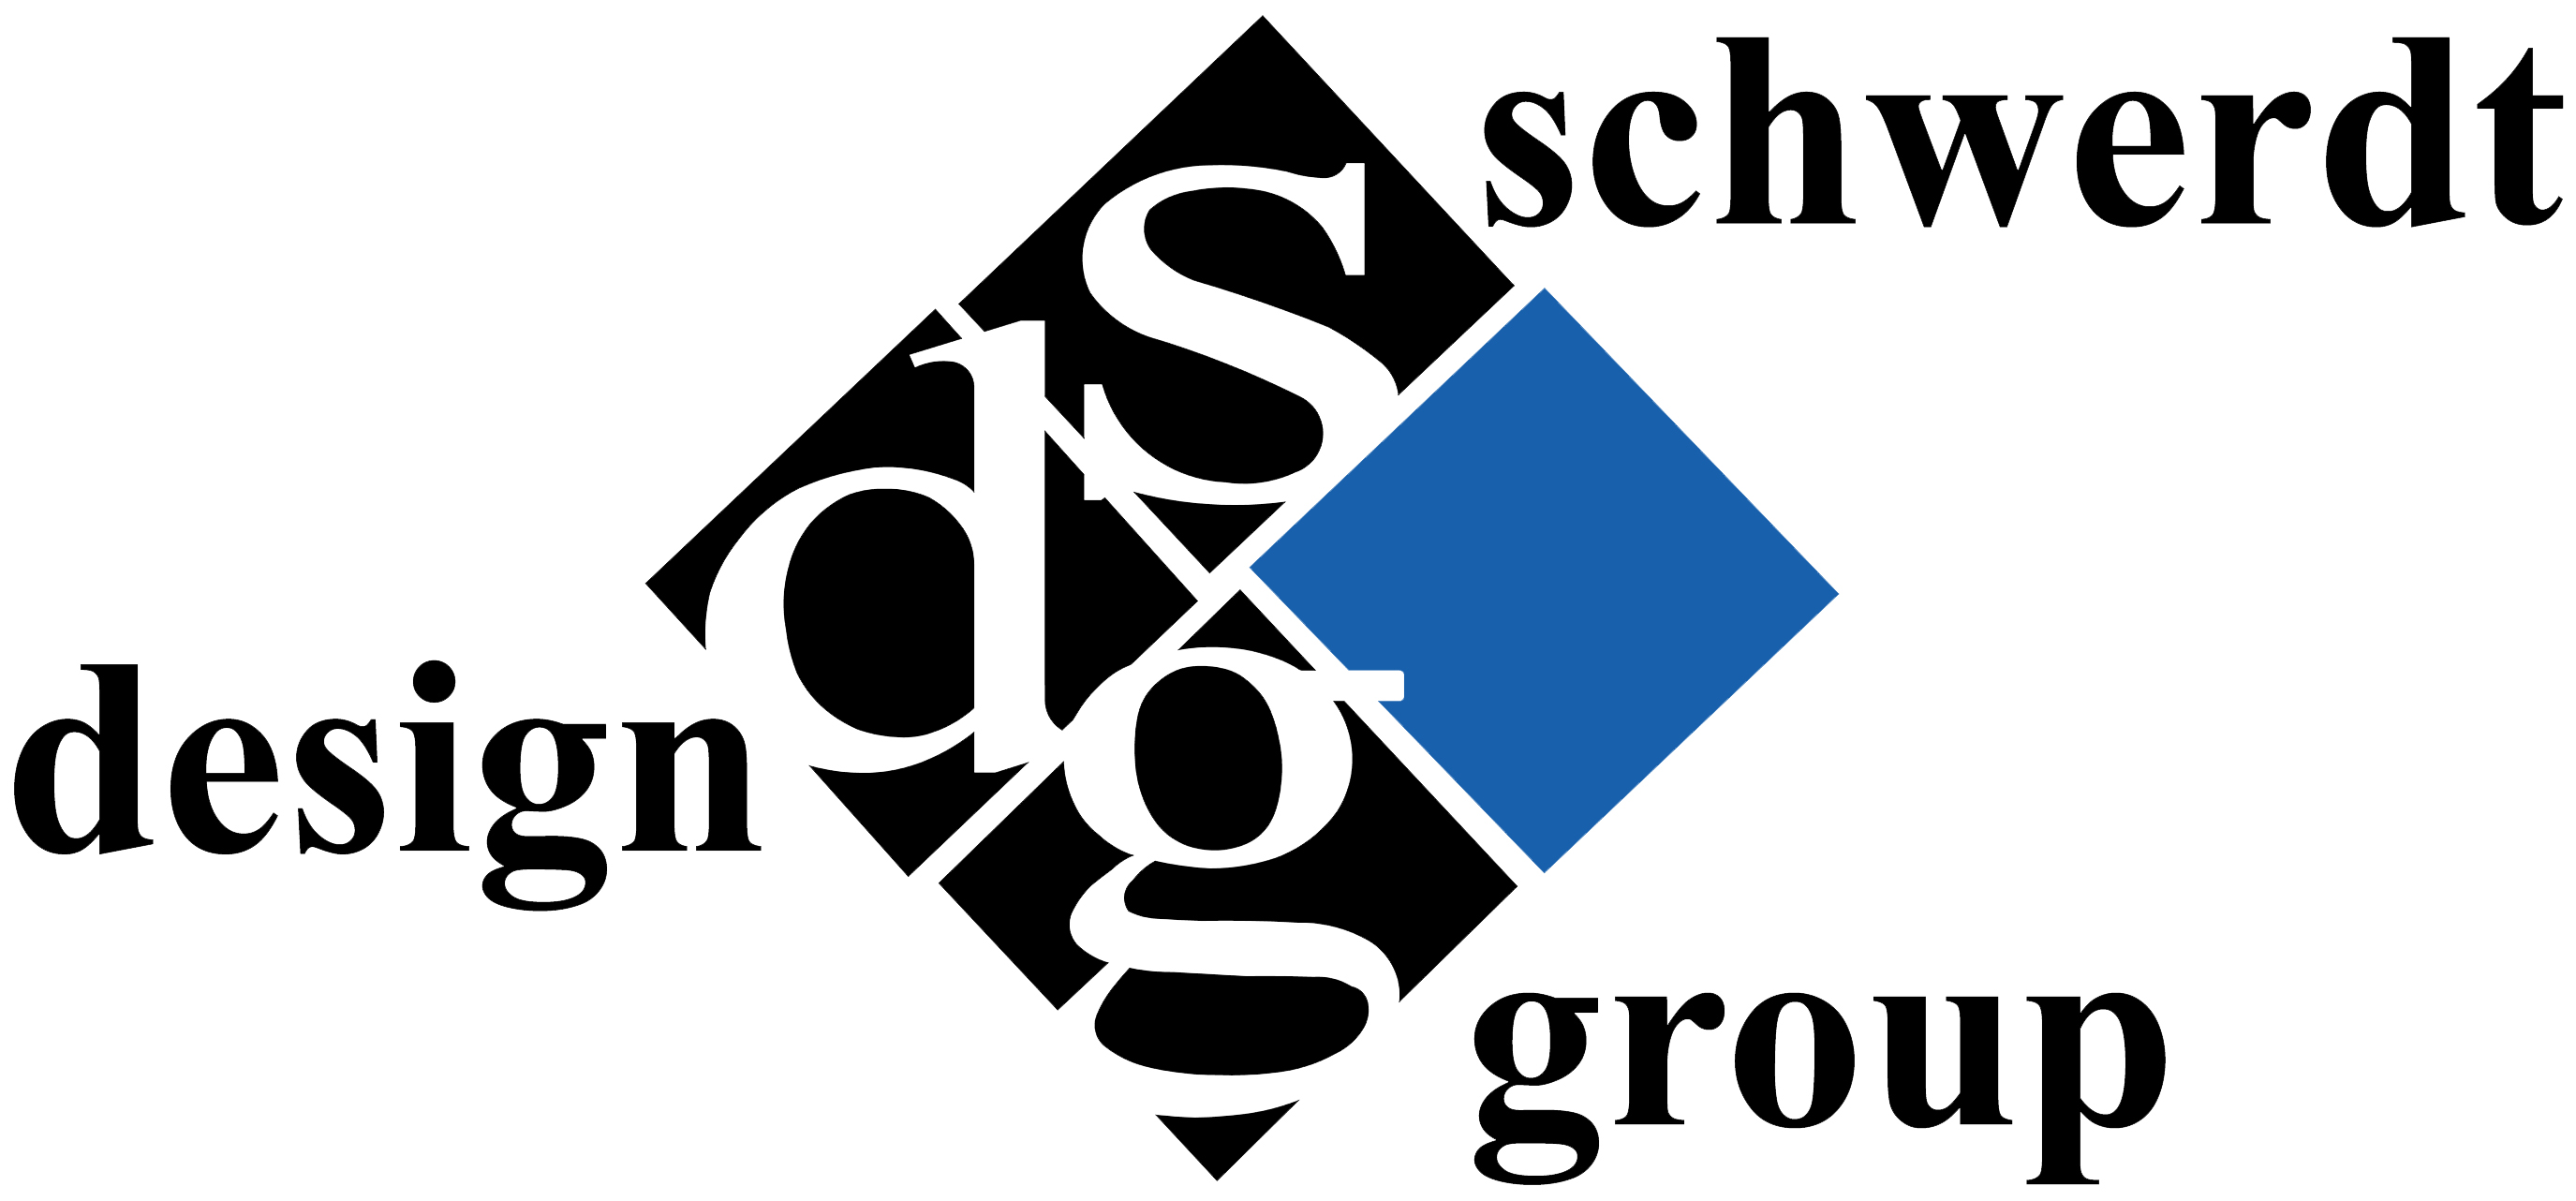 Schwerdt Design Group 1-01